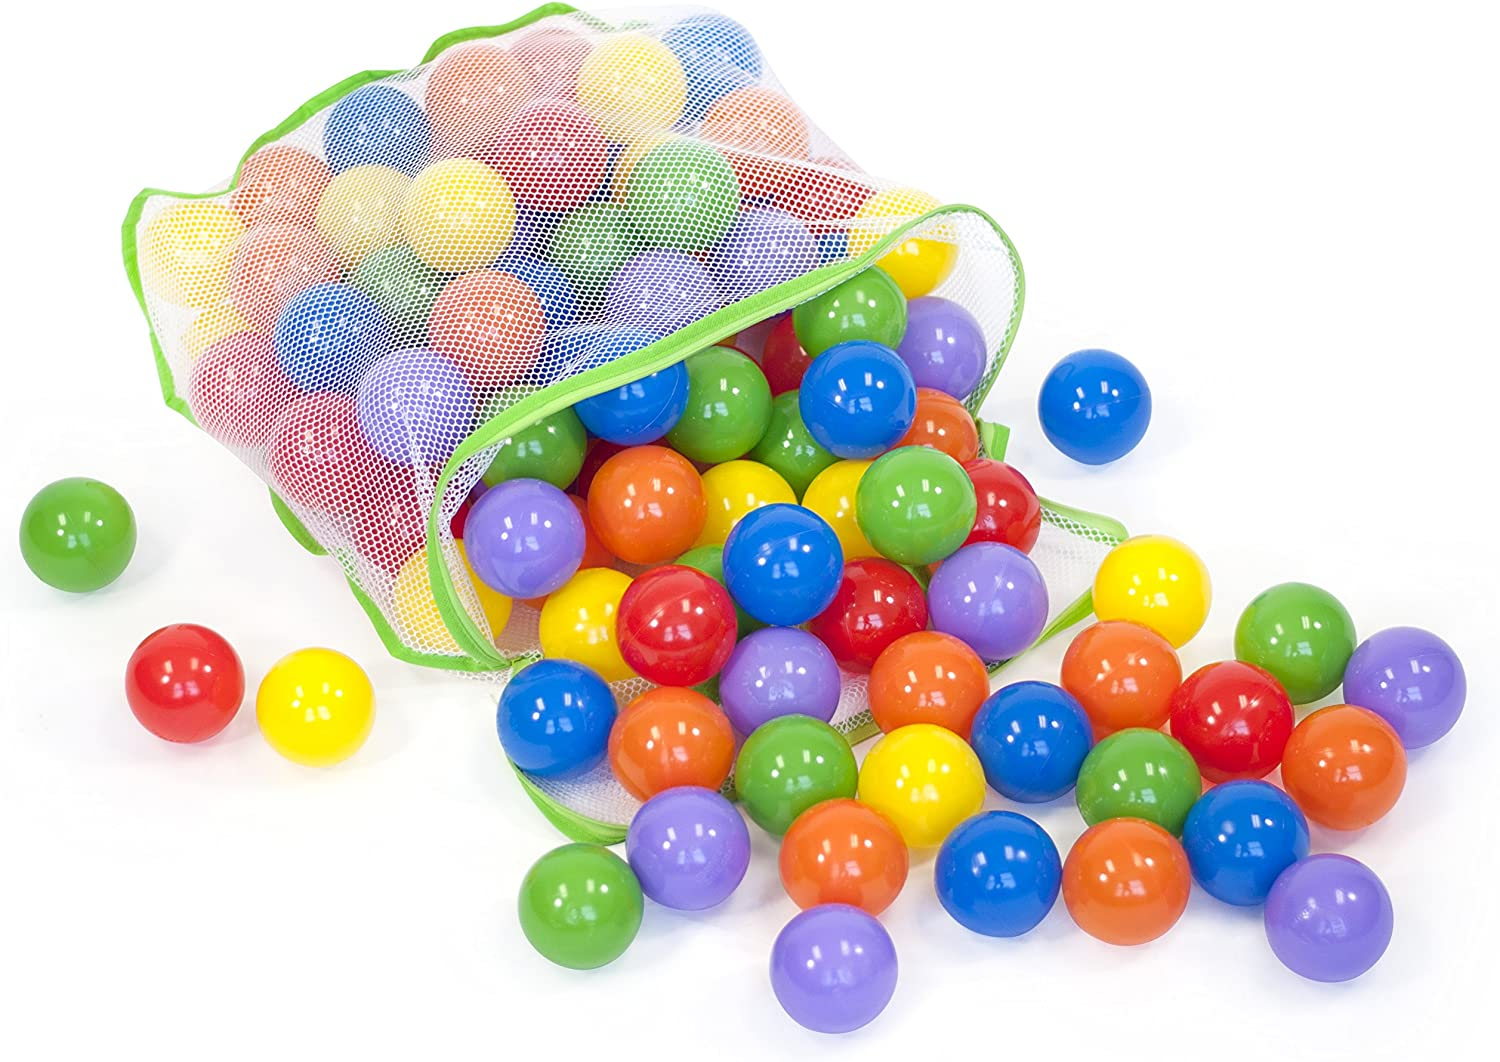 100 colorful Wonder Playballs Safe & Non-Toxic w Storage Tote